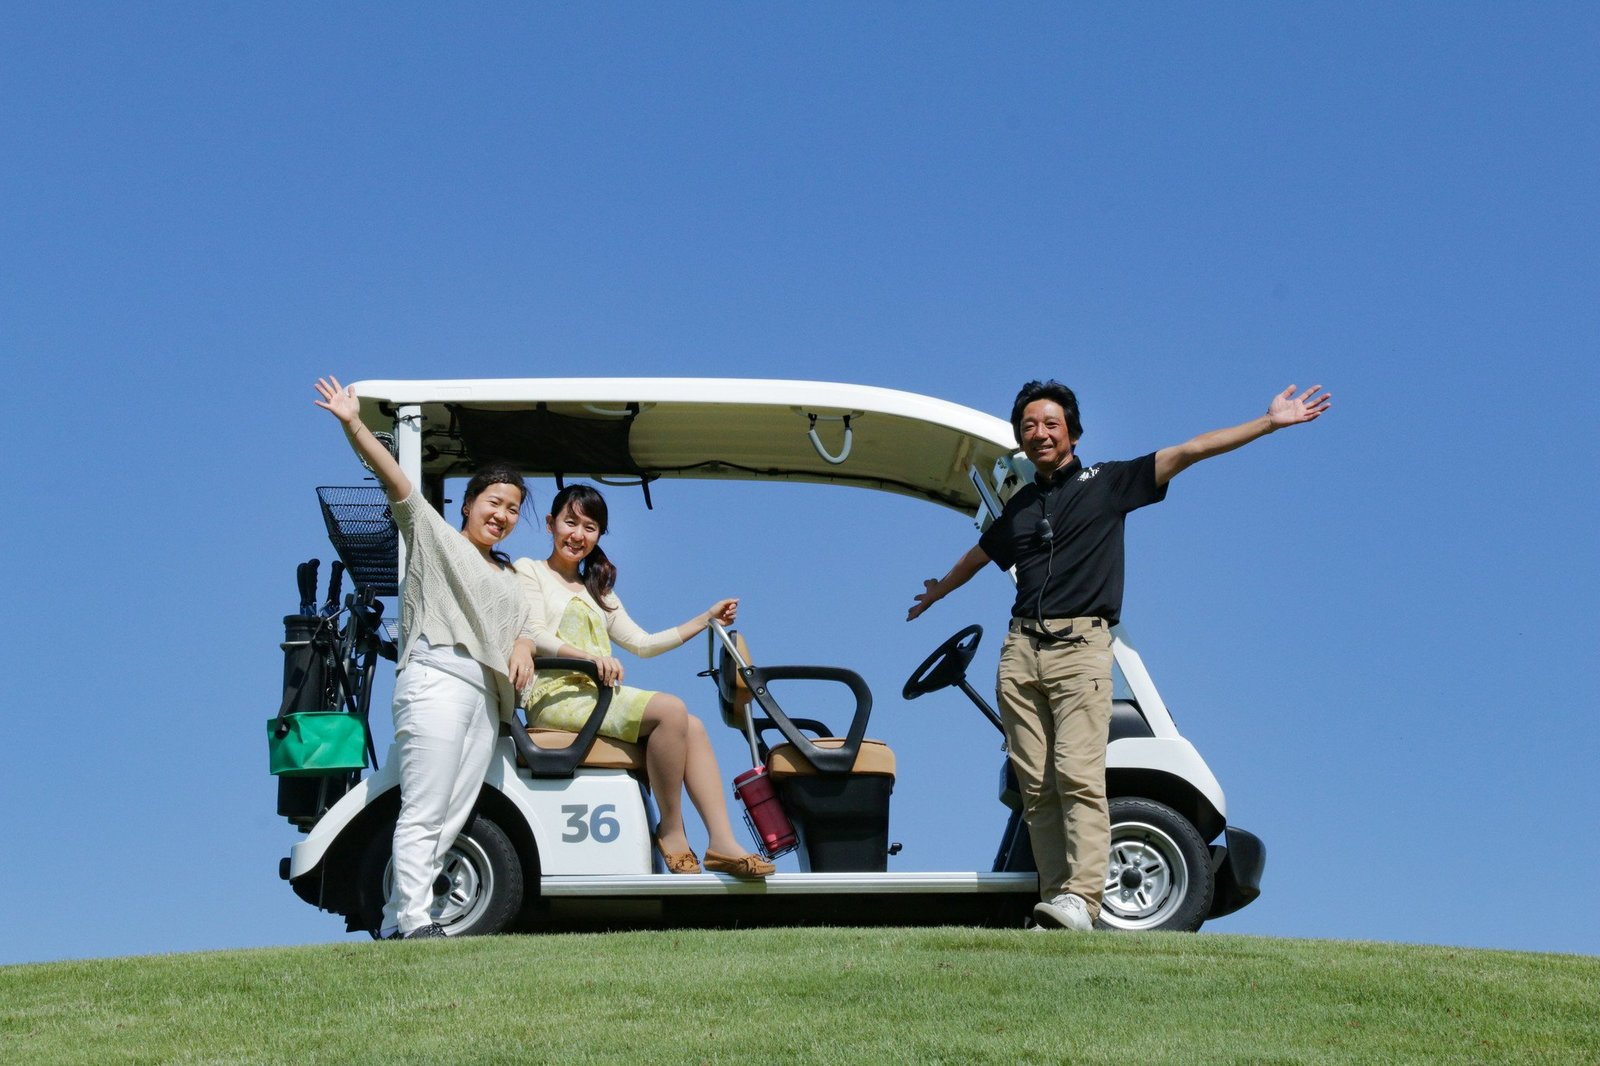 golfcart tour photo spot